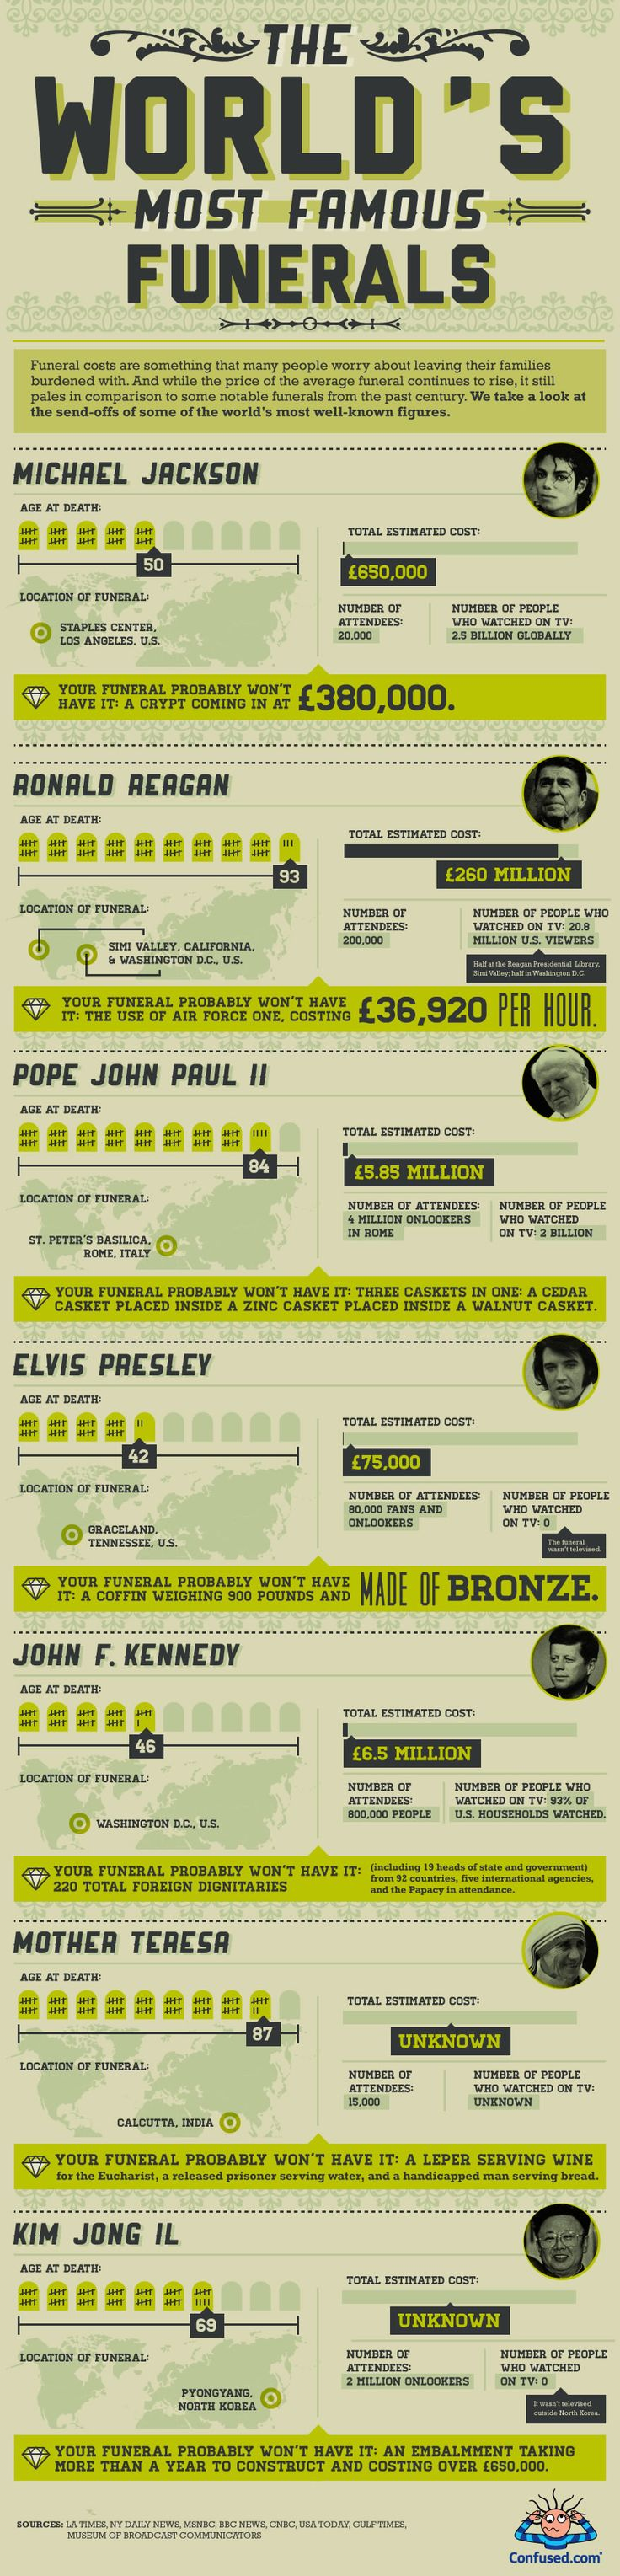 INFOGRAPHIC: THE WORLD'S MOST FAMOUS FUNERALS